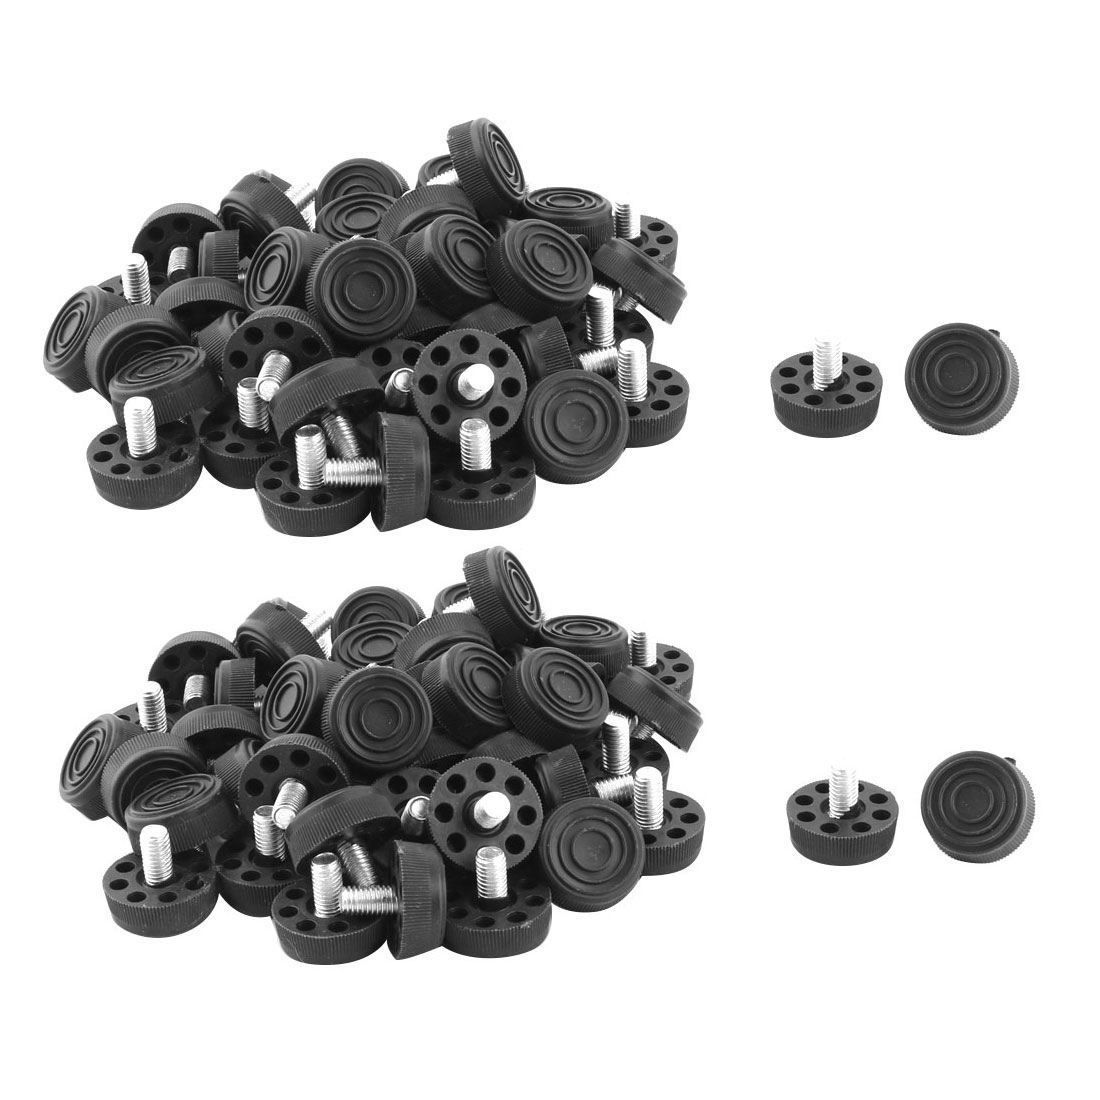 Household Round Base Adjustable Furniture Leg Nonslip Leveling Foot Black 100pcs